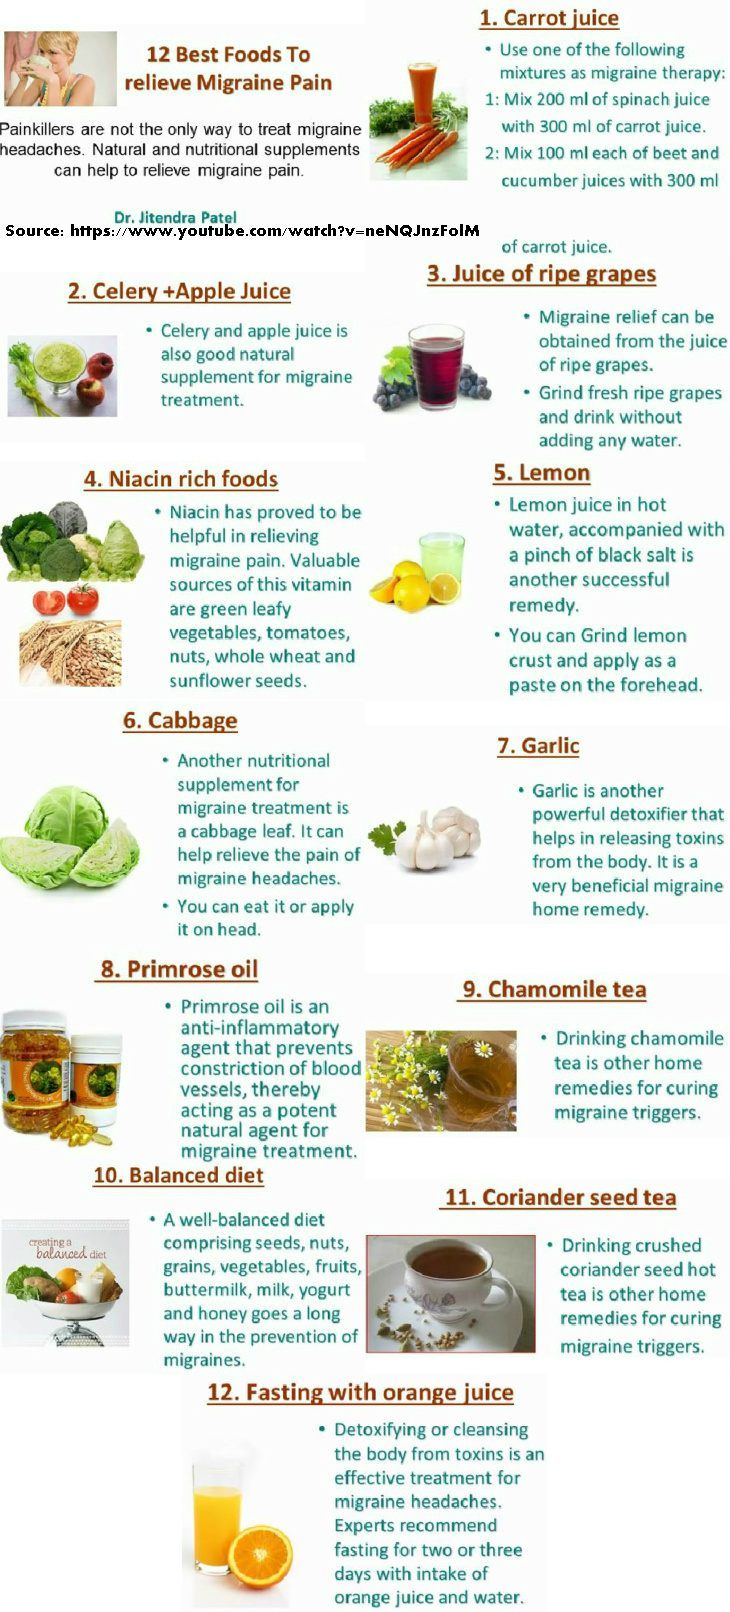 What helps migraines: How to relieve migraines 12 Best Foods to Relieve Migraine Pain Infographic 1. Carrot juice 2. Celery +Apple Juice 3. Juice of ripe grapes 4. Niacin rich foods 5. Lemon 6. Cabbage 7. Garlic 8. Primrose Oil 9. Chamomile tea 10. Balanced diet 11. Coriander seed tea 12. Orange juice fast Dr. Jitendra Patel link